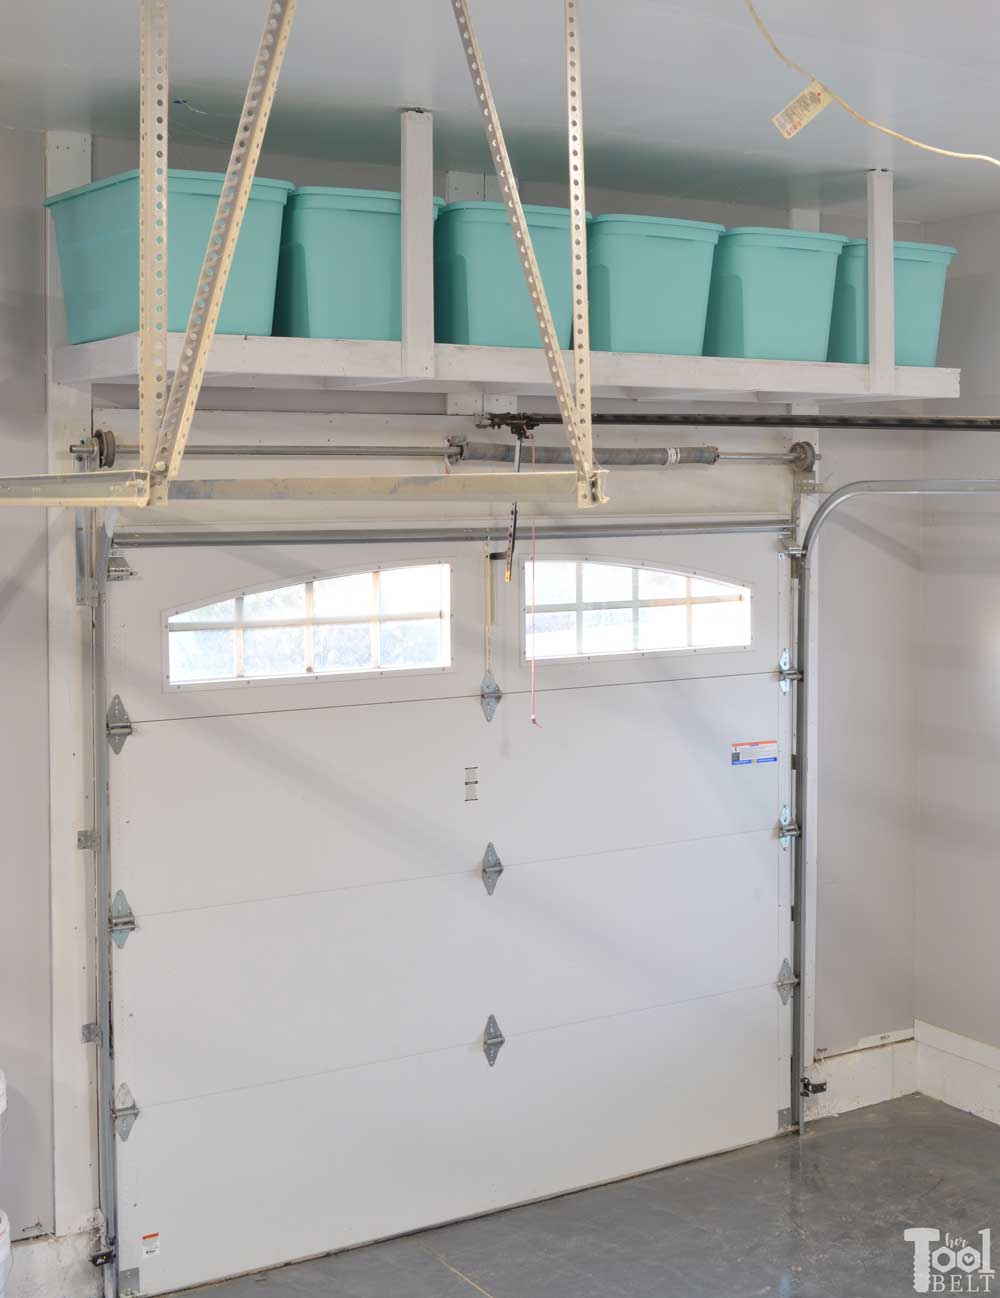 Overhead Garage Storage Shelf - Her Tool Belt